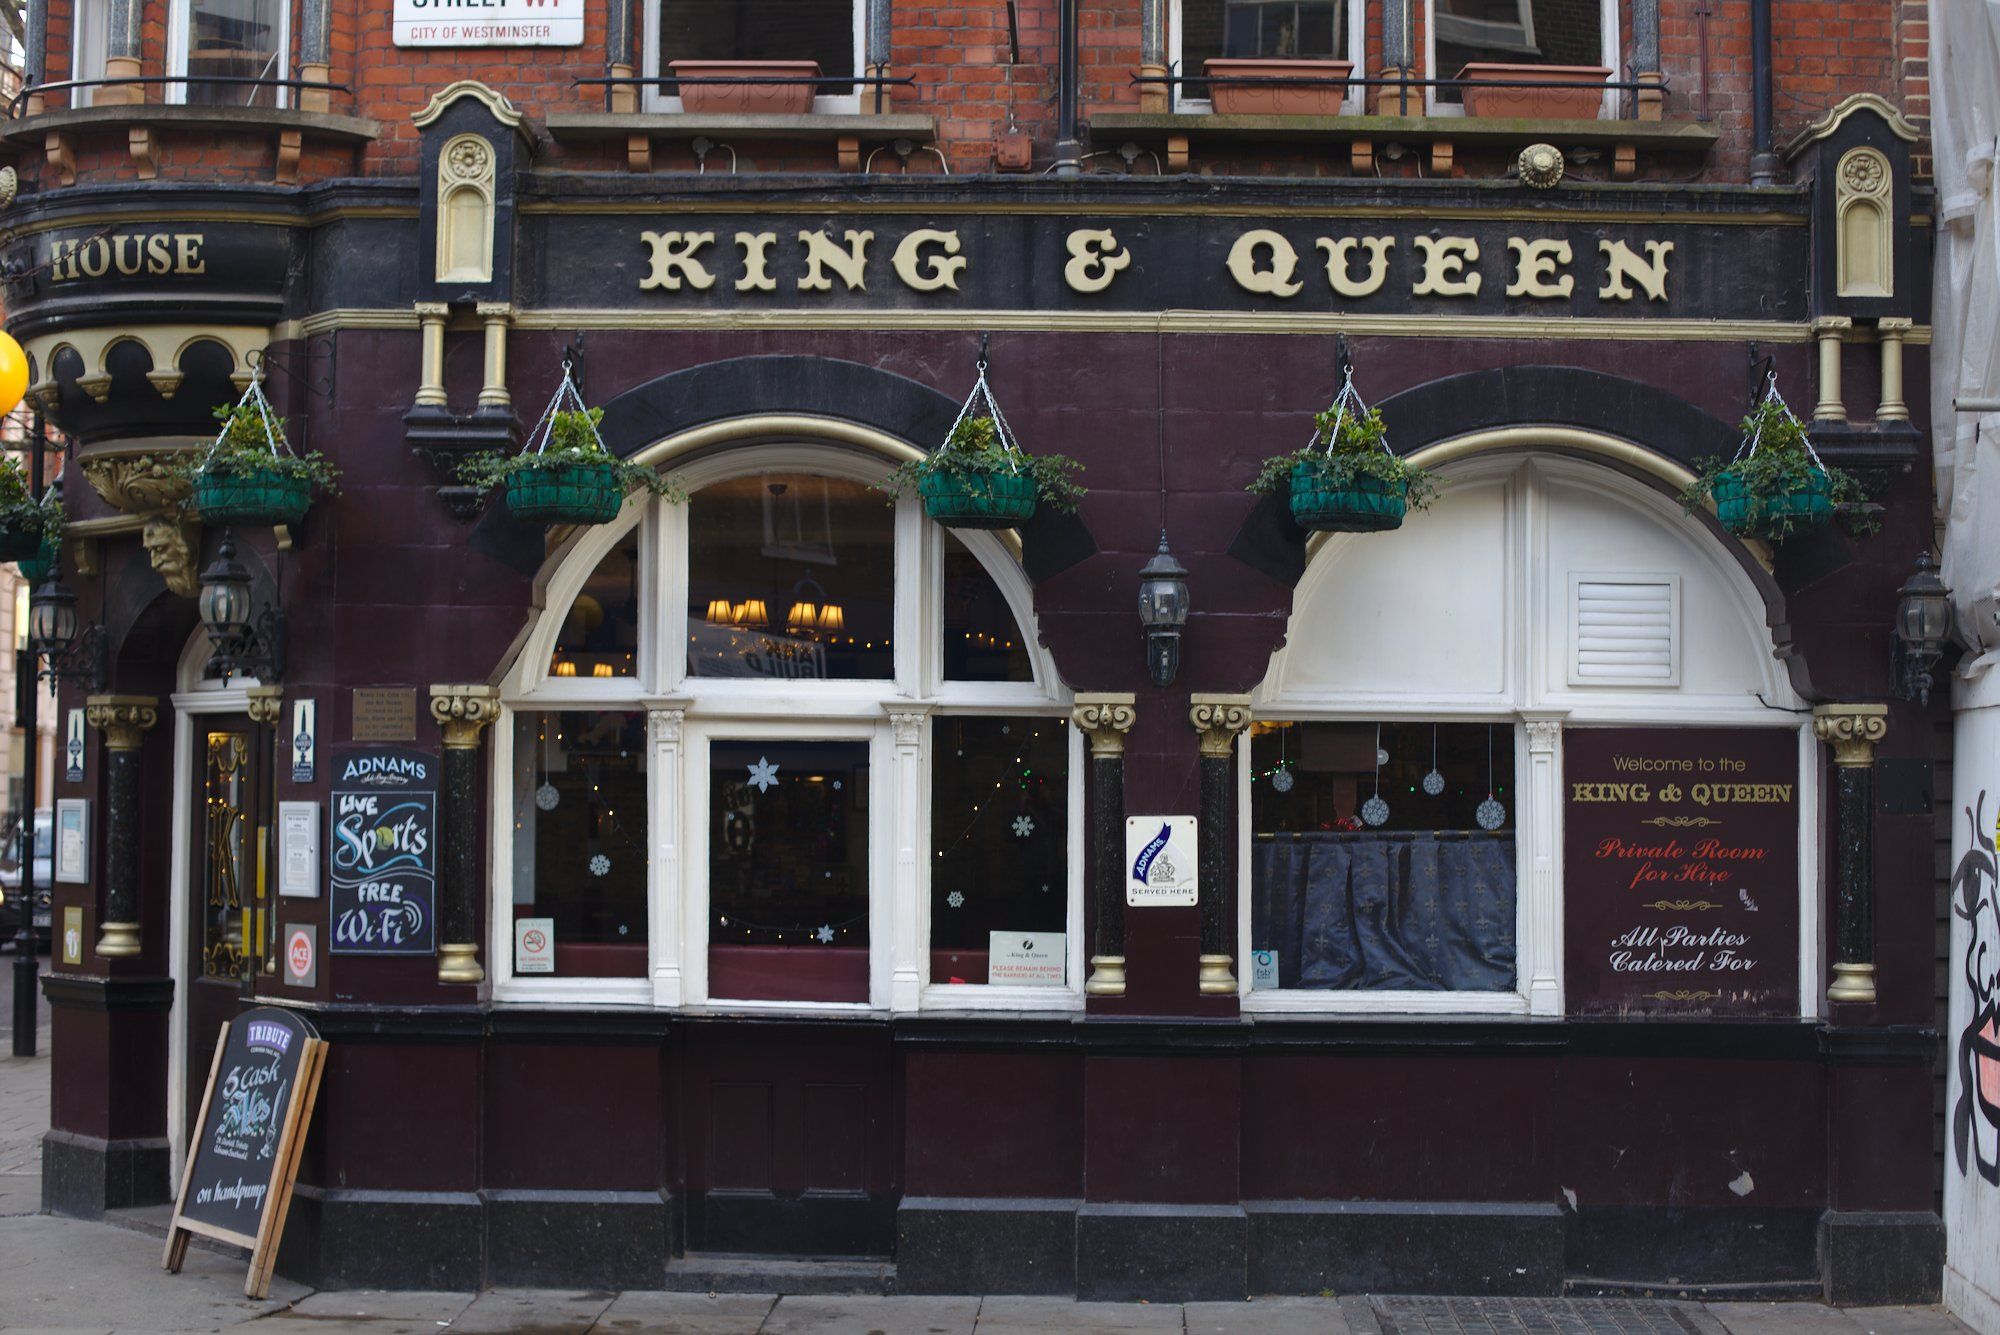 King and Queen pub